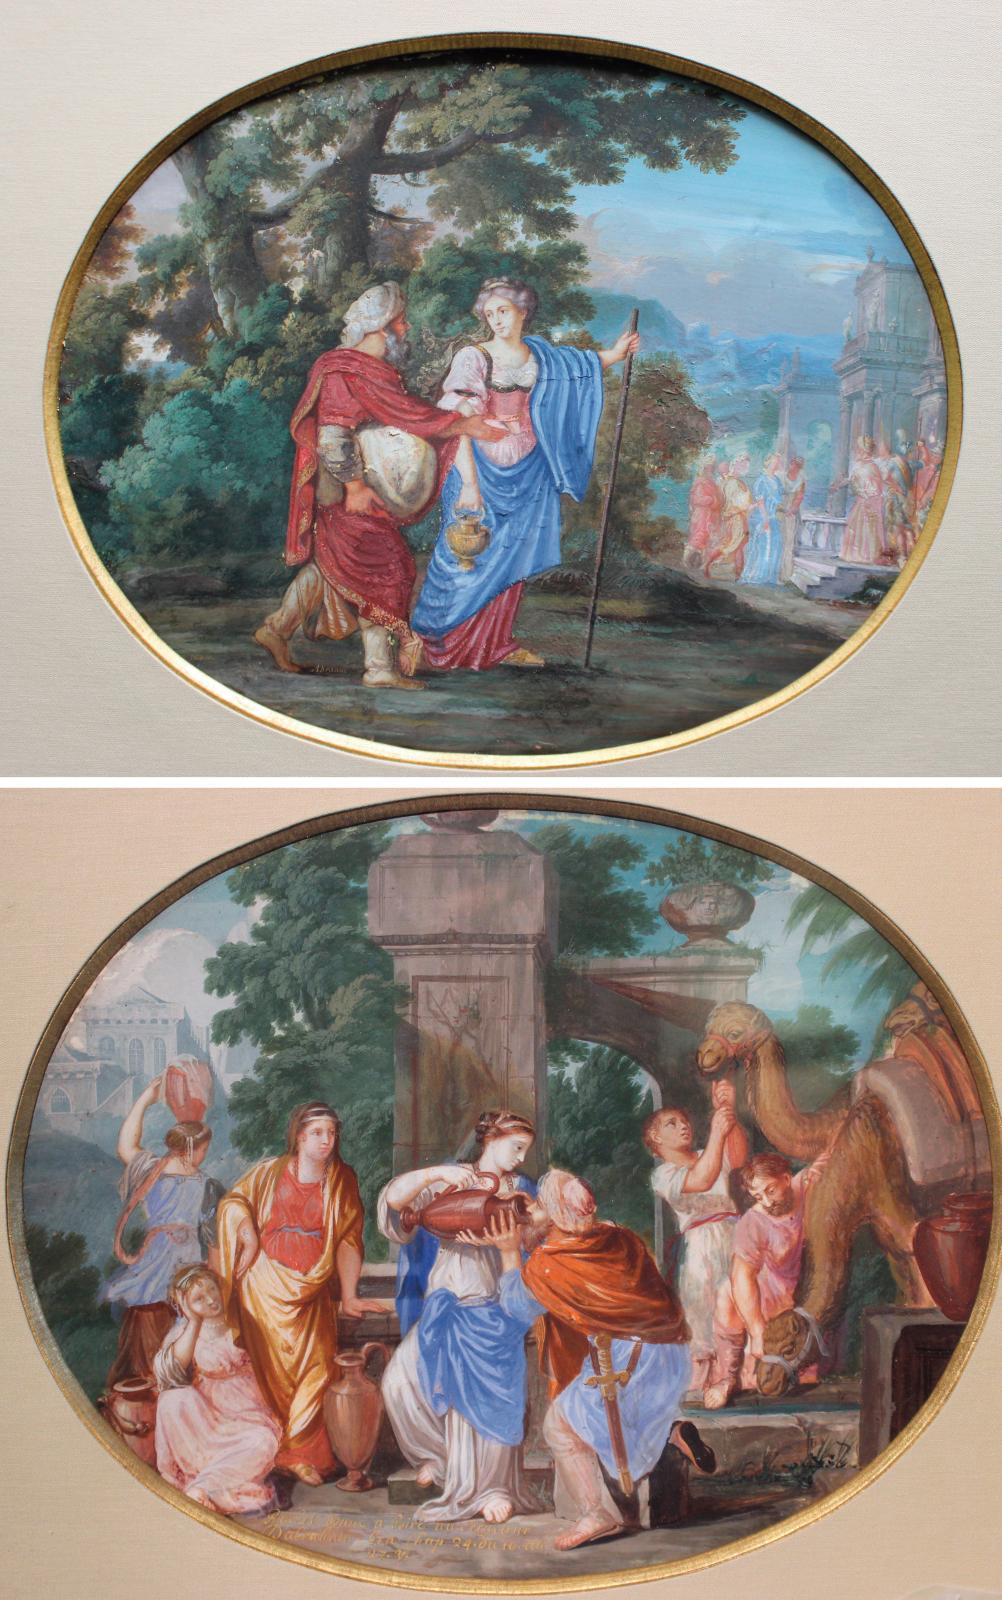 Jean Joubert (active ca. 1643-1707), Abraham and Sarah Going to Egypt and Rebecca and Giving Abraham's Servant a Drink, two oval gouaches on vellum st